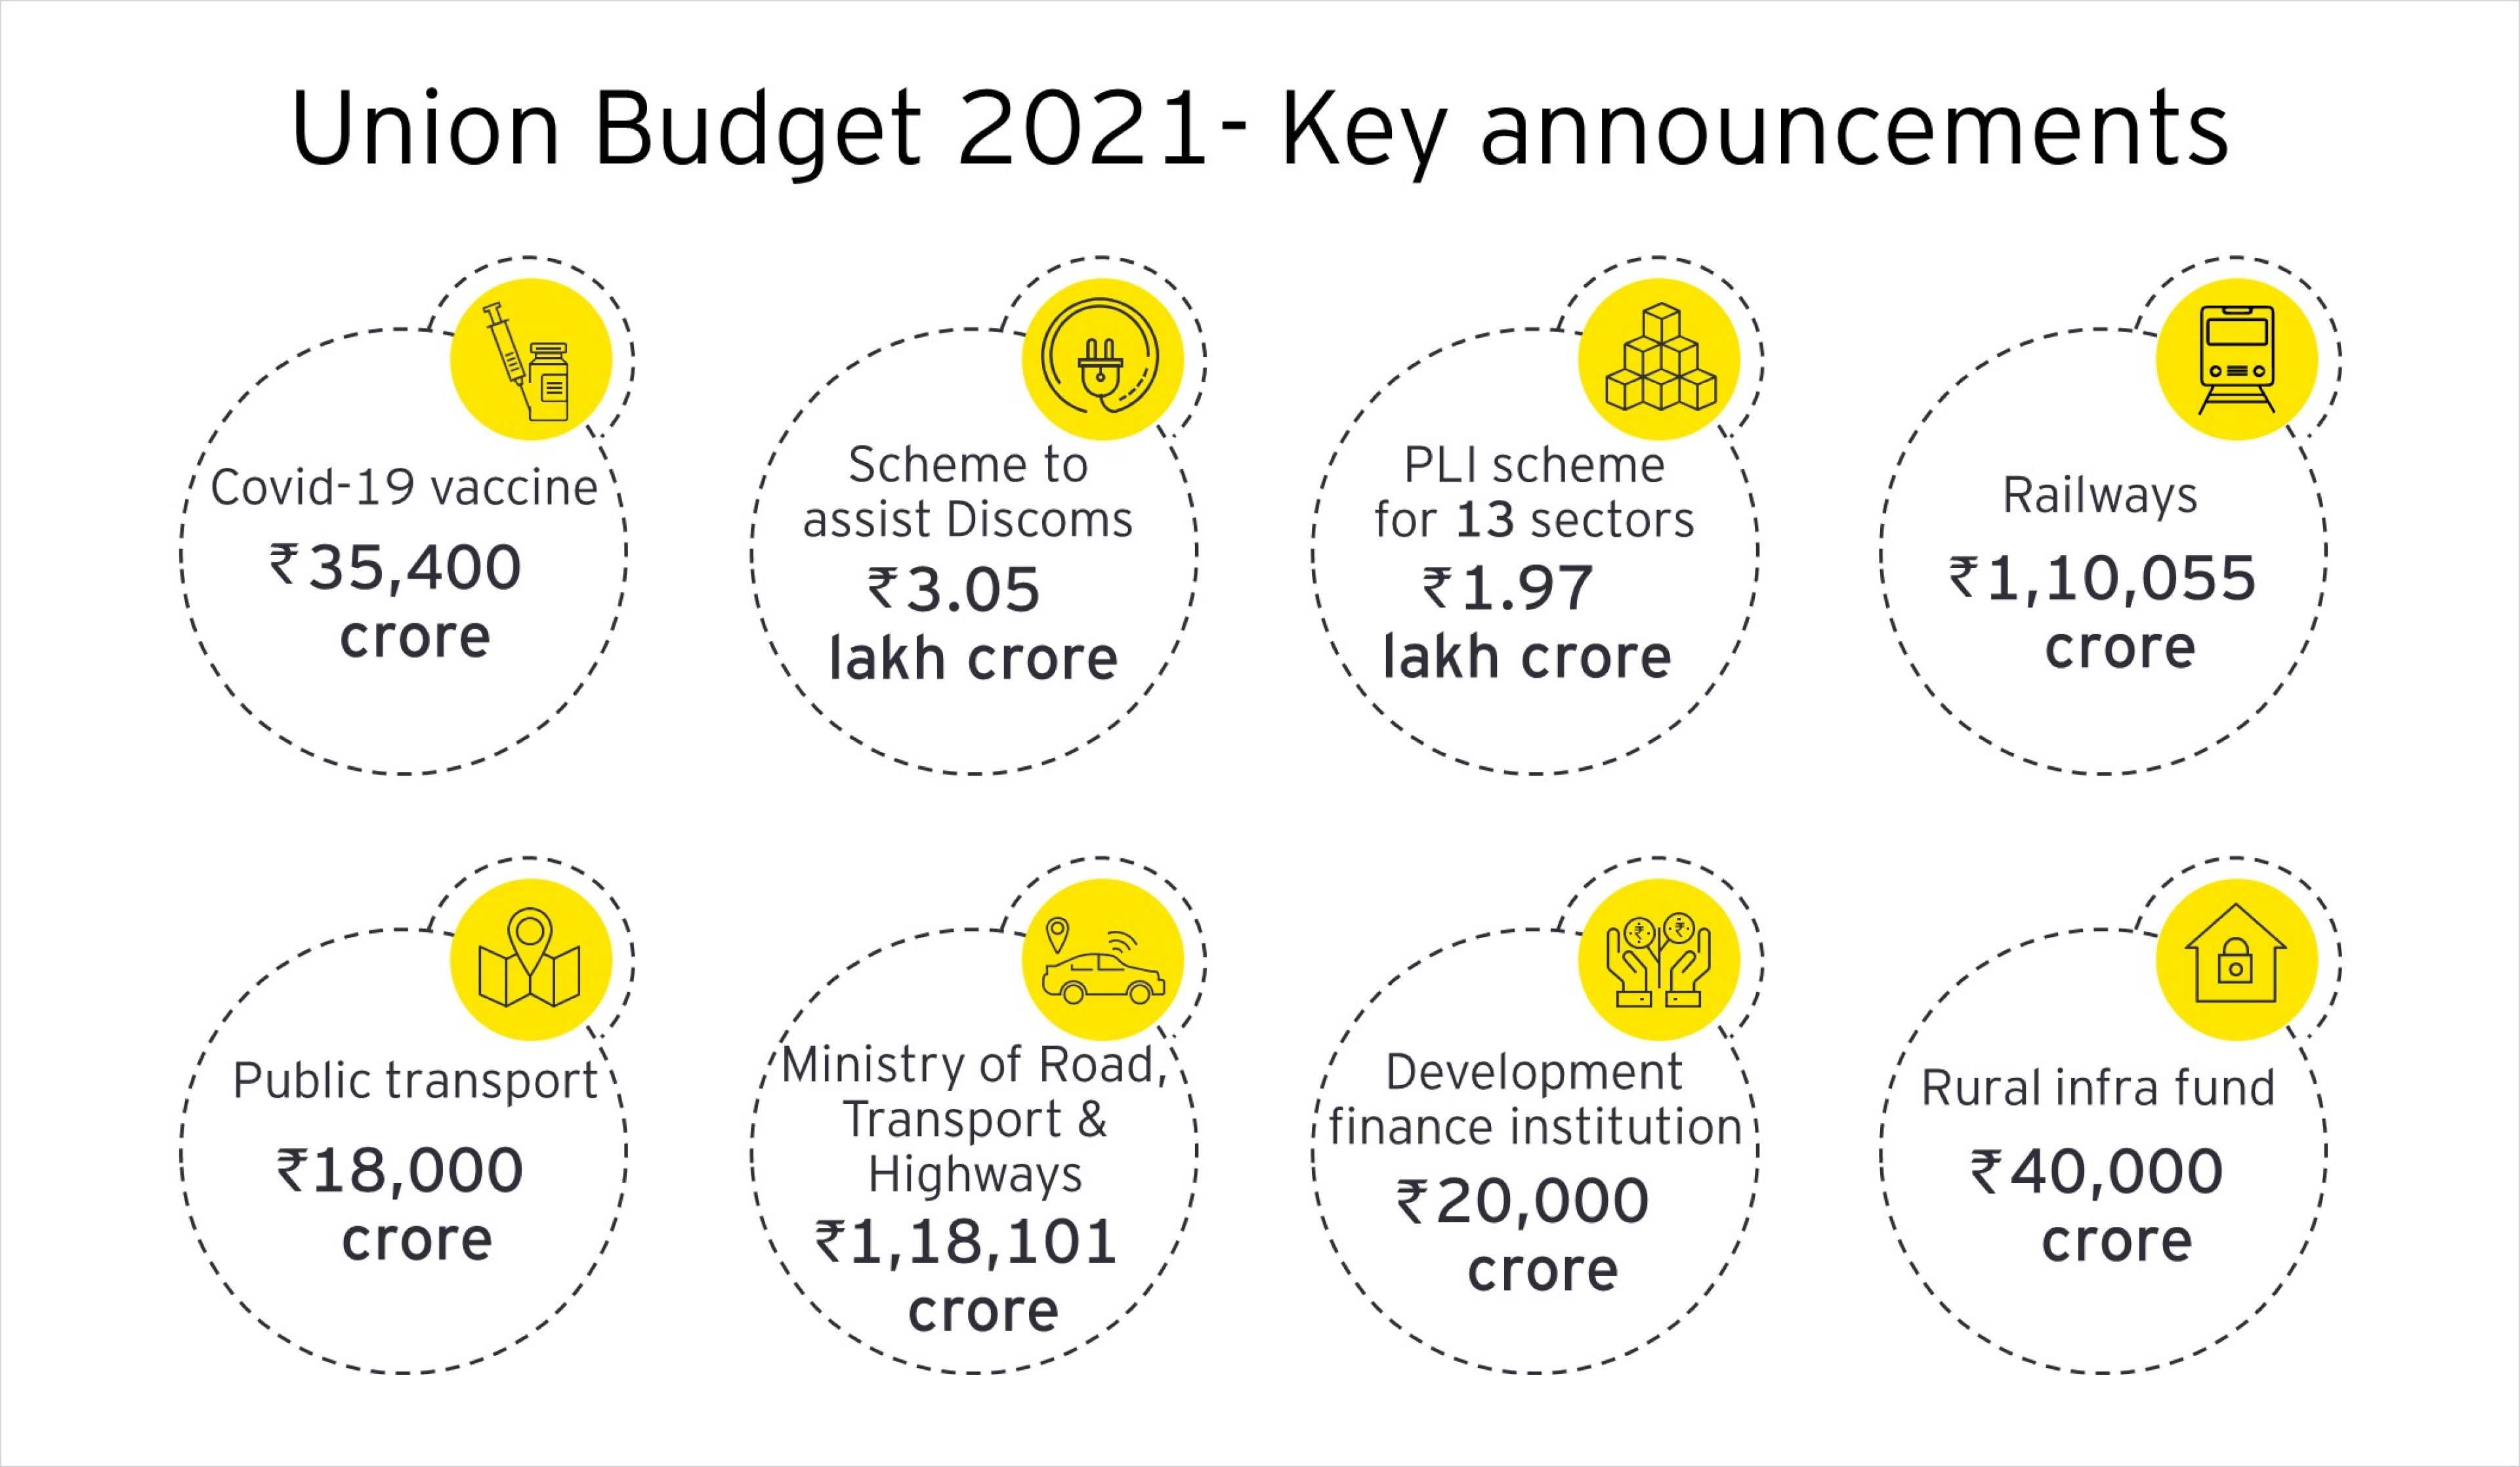 Union Budget 2021 Highlights | EY India